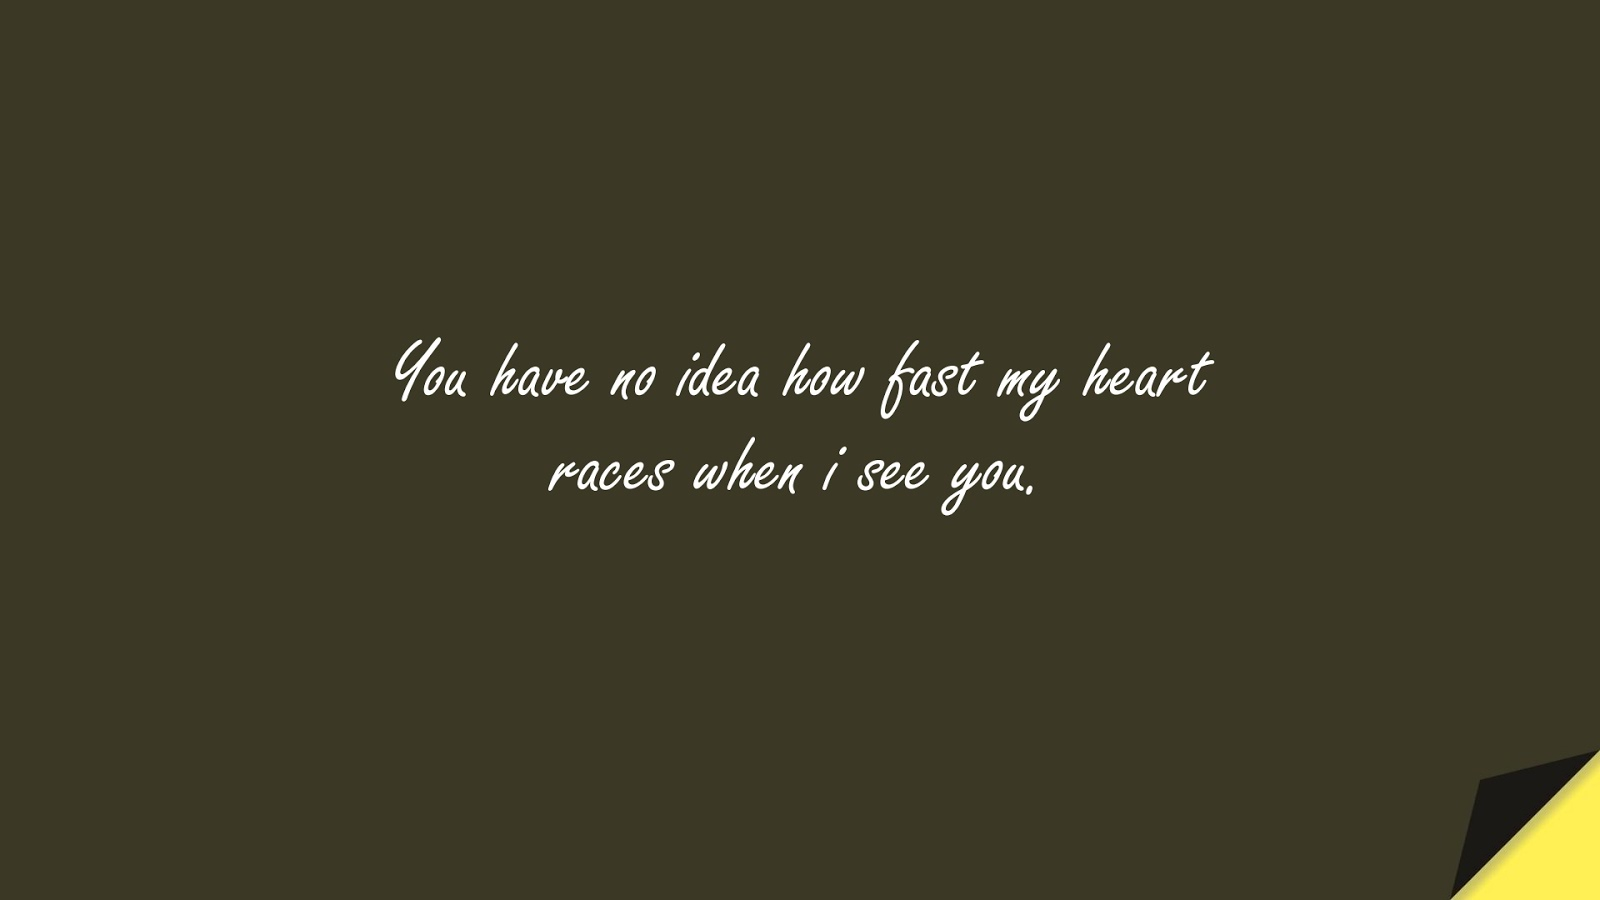 You have no idea how fast my heart races when i see you.FALSE